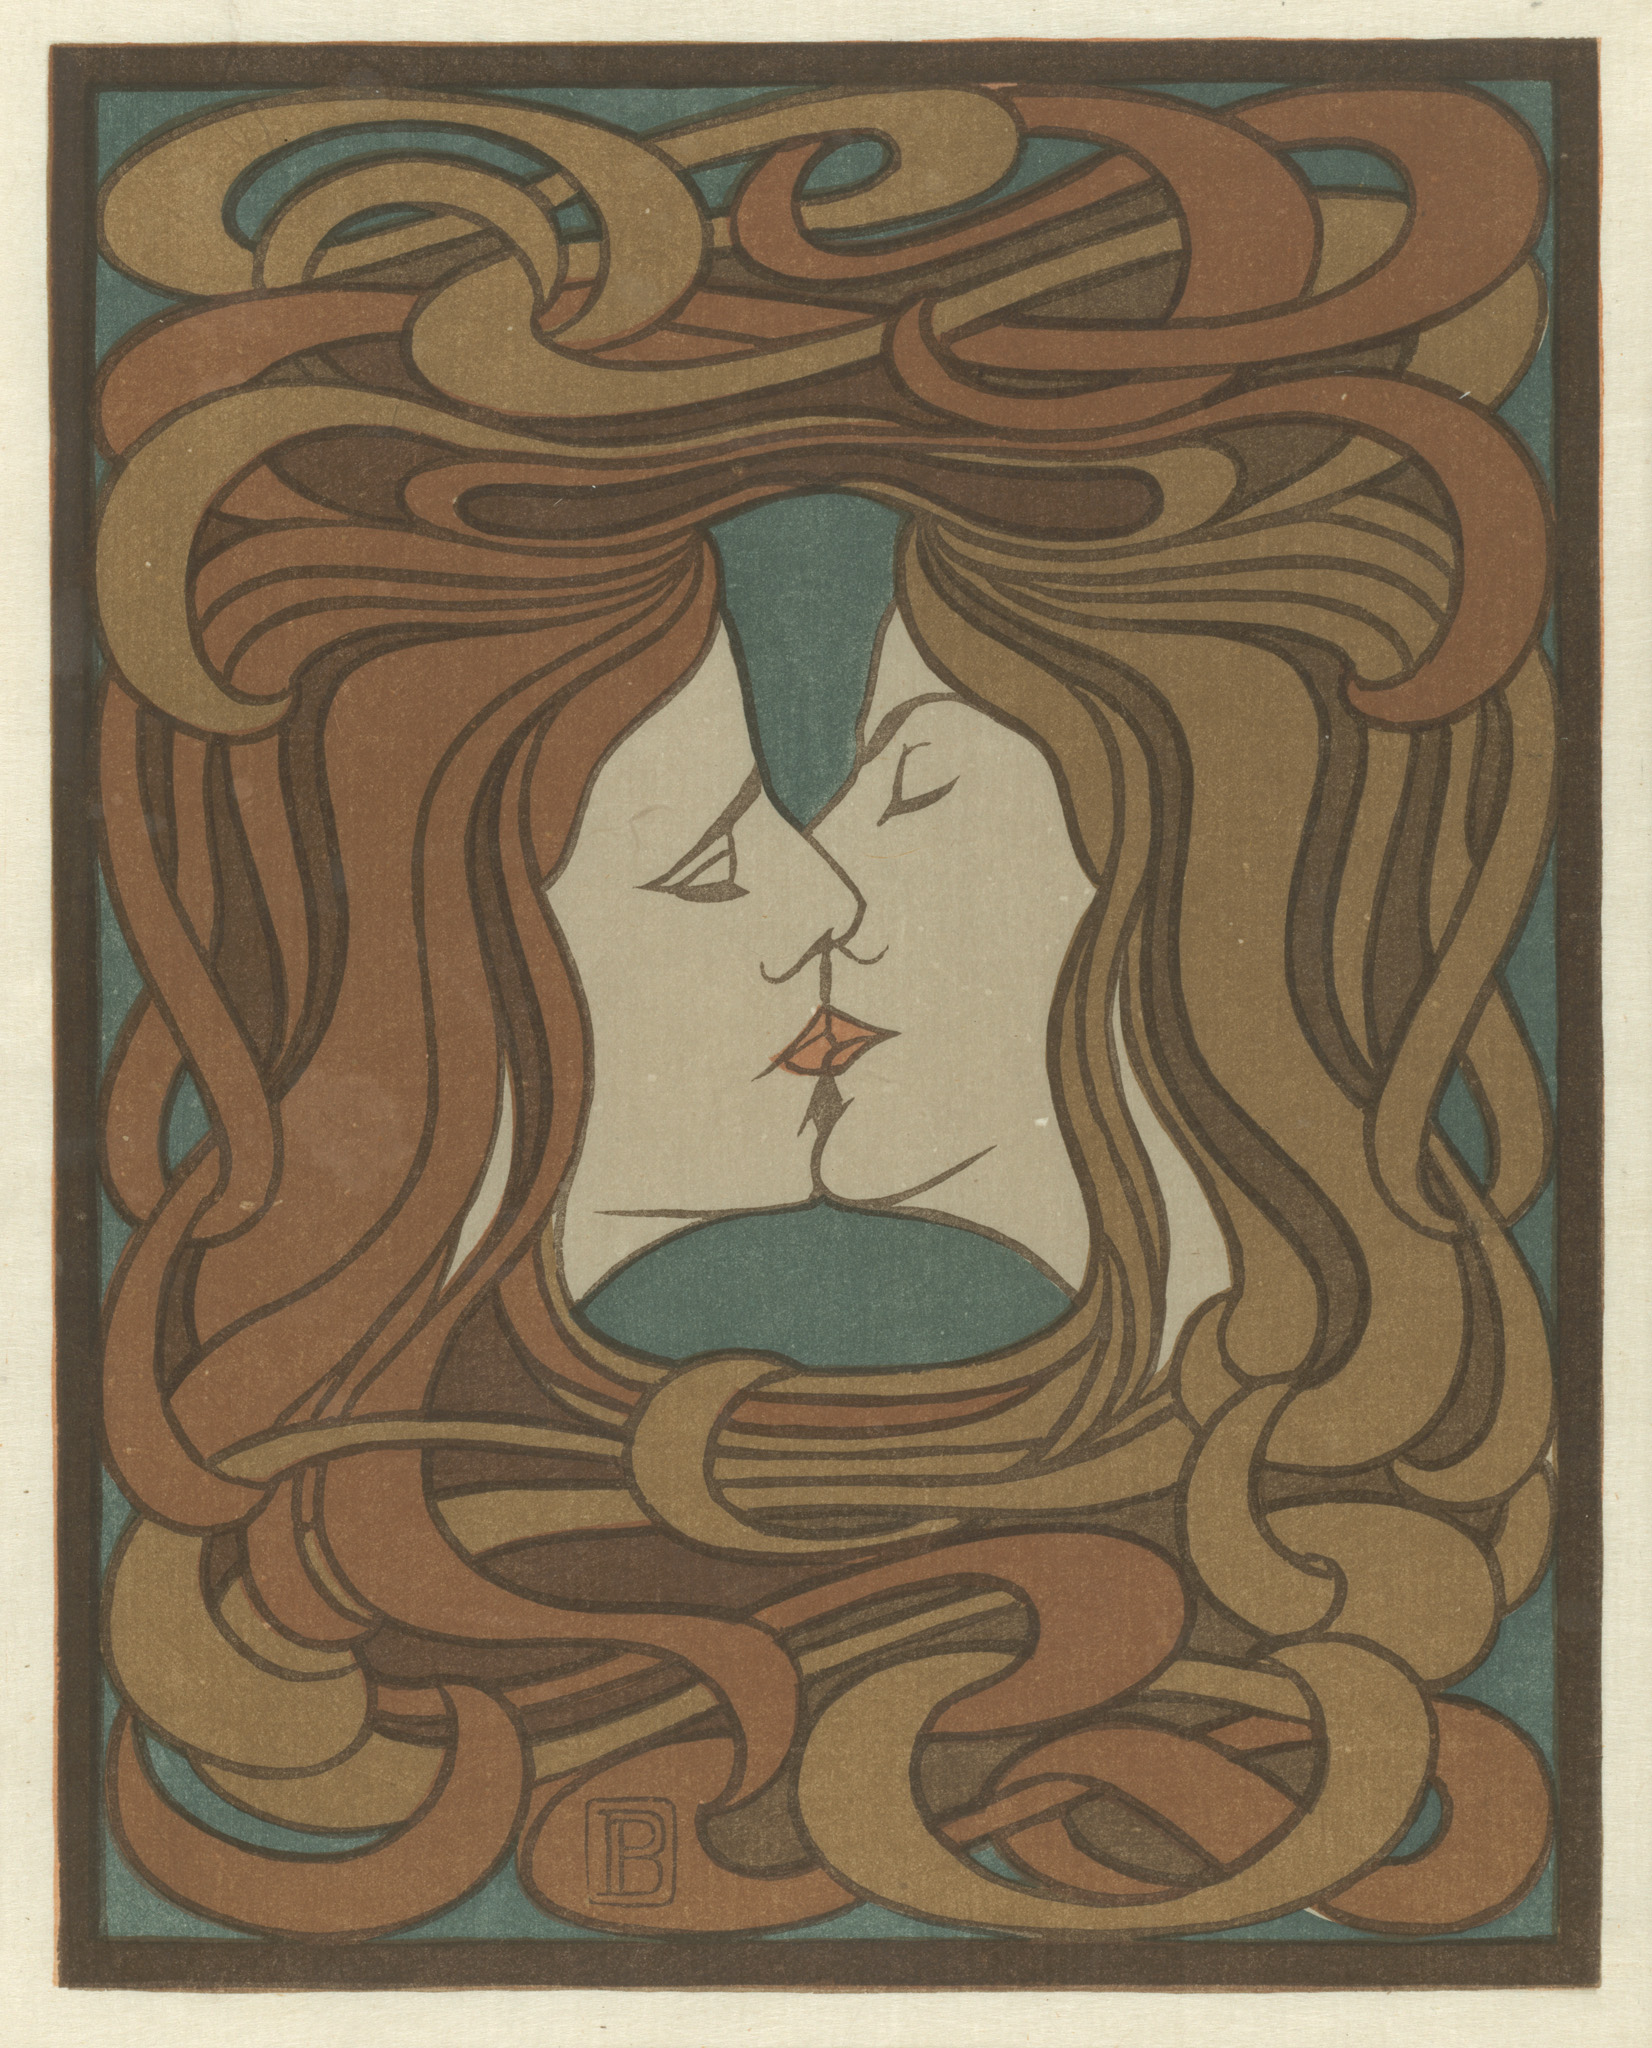 """Peter Behrens. The Kiss. 1898. Plate from the journal """"Pan"""" (Vol. IV, No. 2, July-August-Sept 1898). The Baltimore Museum of Art: Collection of LeRoy E. Hoffberger and Paula Gately Tillman-Hoffberger, BMA 2017.18"""